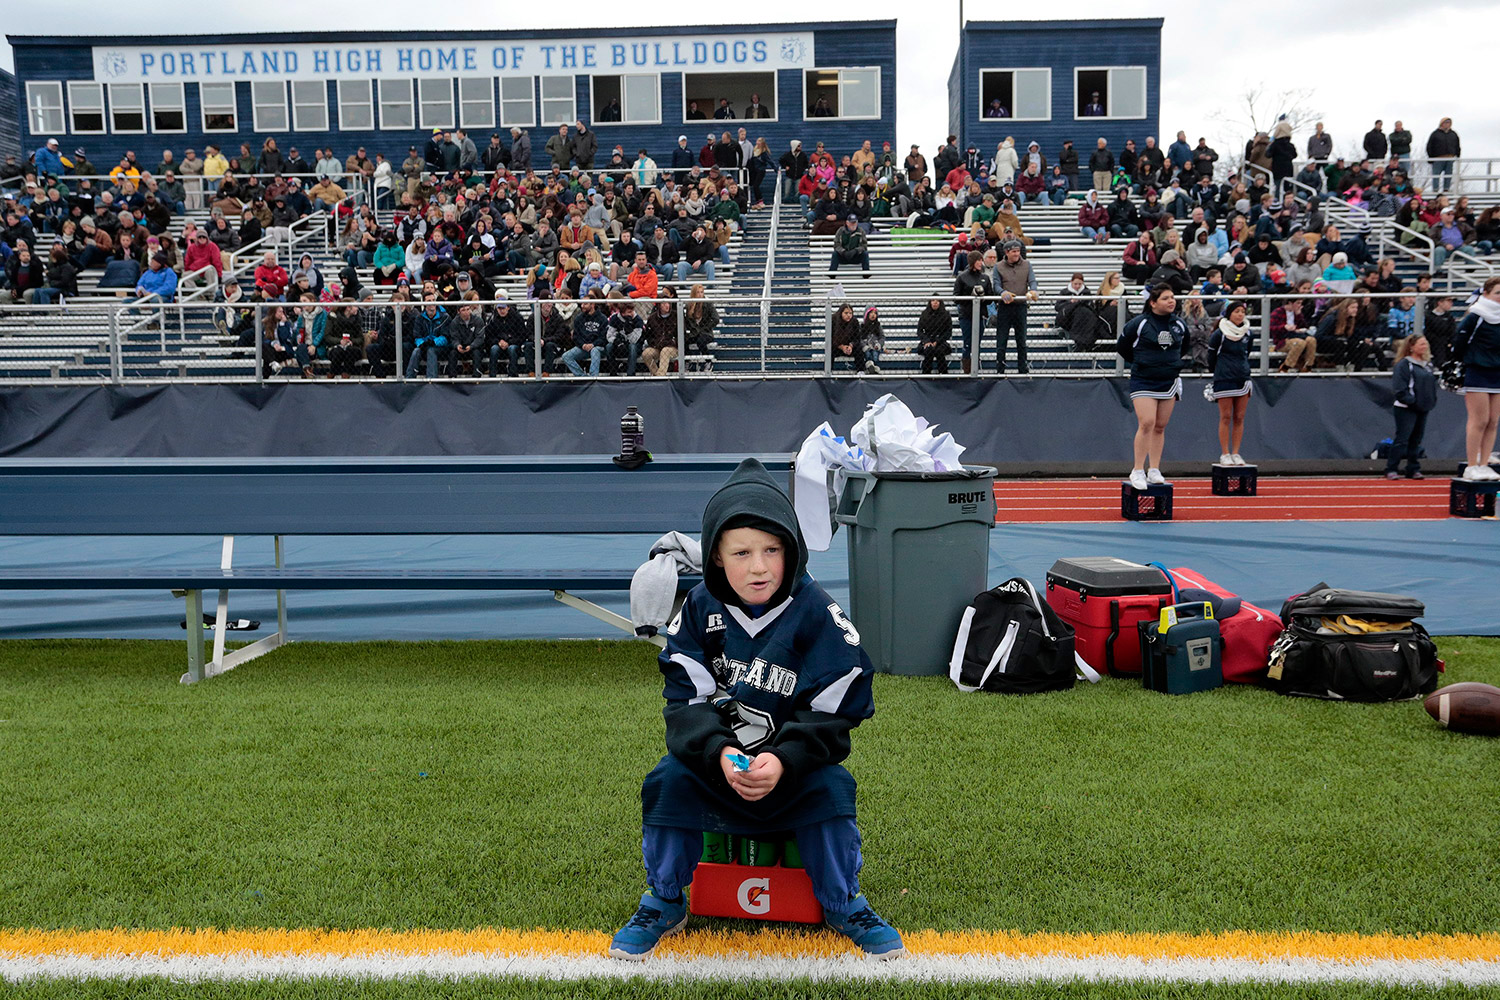 PORTLAND, ME - NOVEMBER 26: Colin O'Leary, 7, the water boy for the Portland high football team, watches the 104th annual Deering vs. Portland Thanksgiving Day football game at Fitzpatrick Stadium Thursday, November 26, 2015. (Photo by Gabe Souza/Staff Photographer)